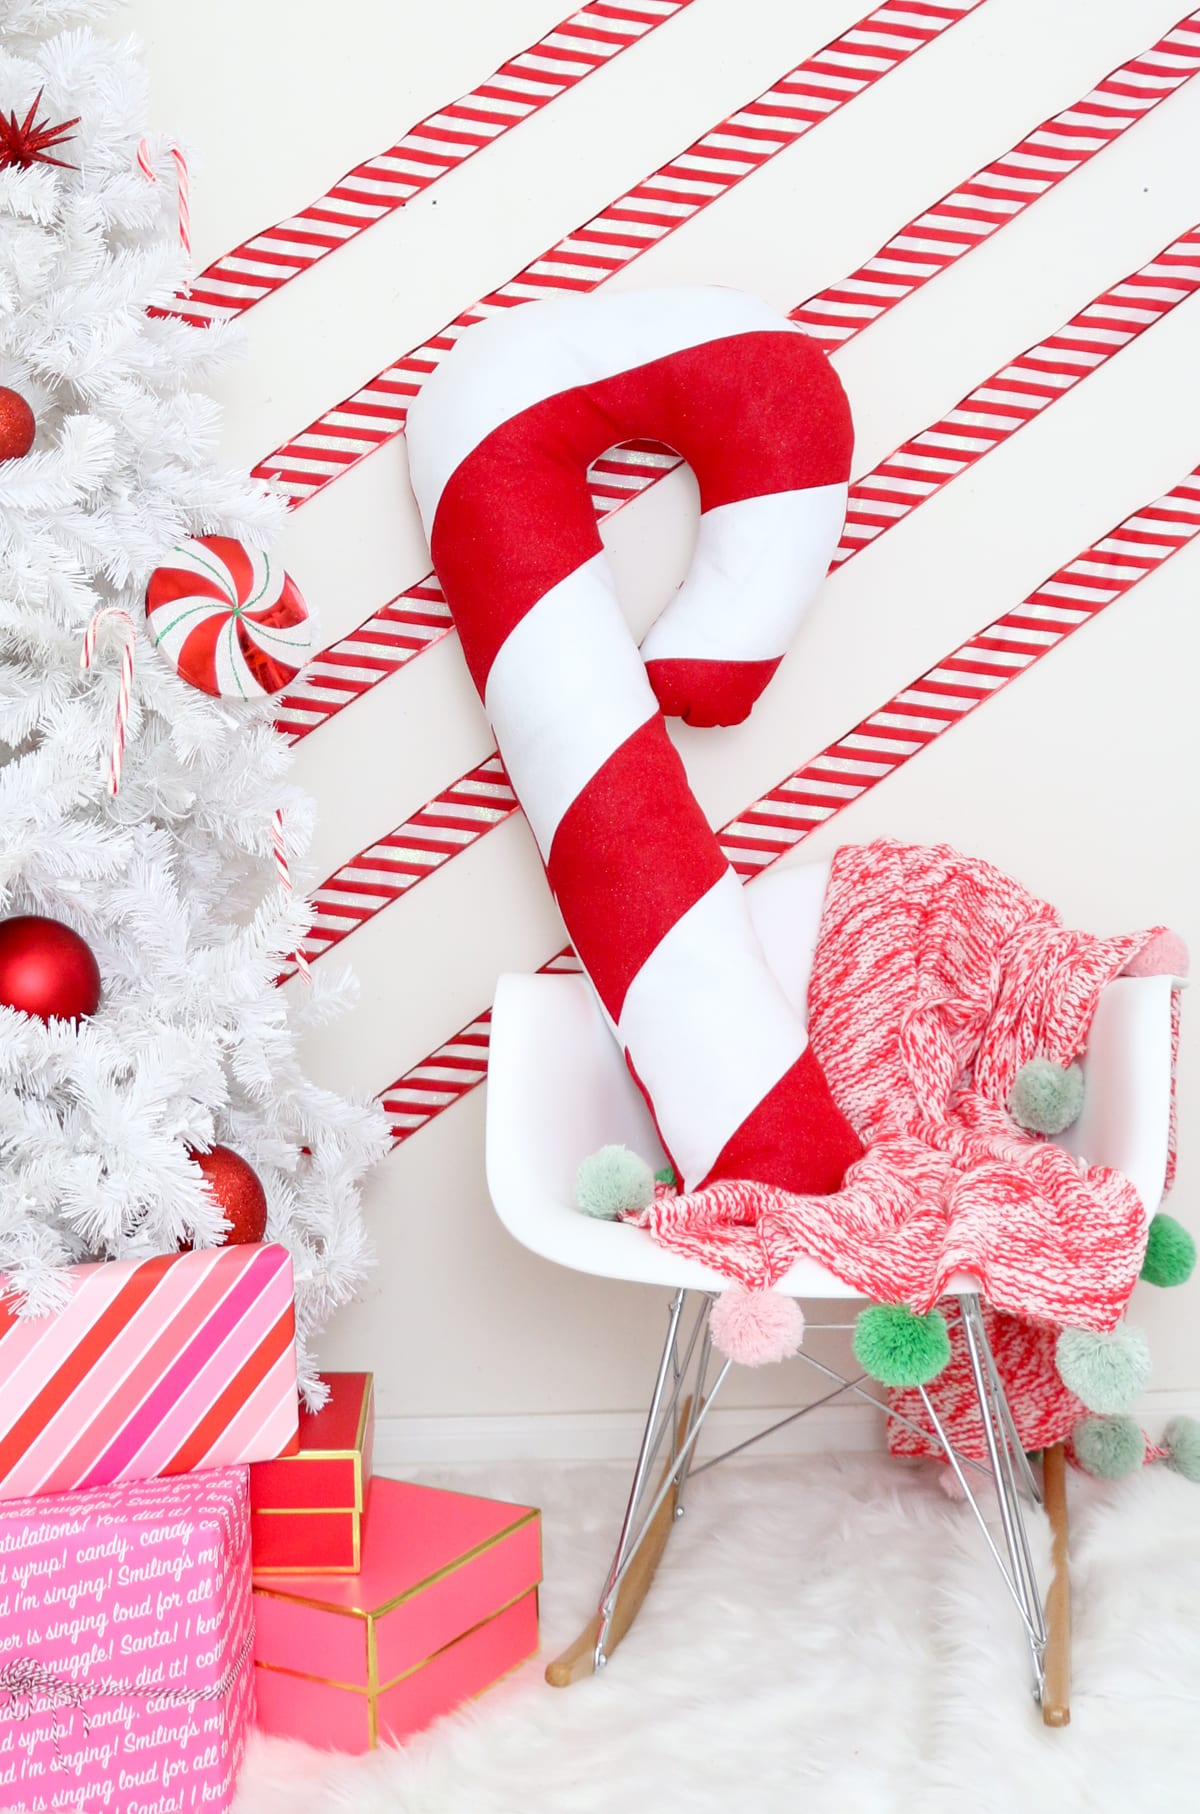 Make A Festive Giant Candy Cane Pillow For Christmas Lovely Indeed